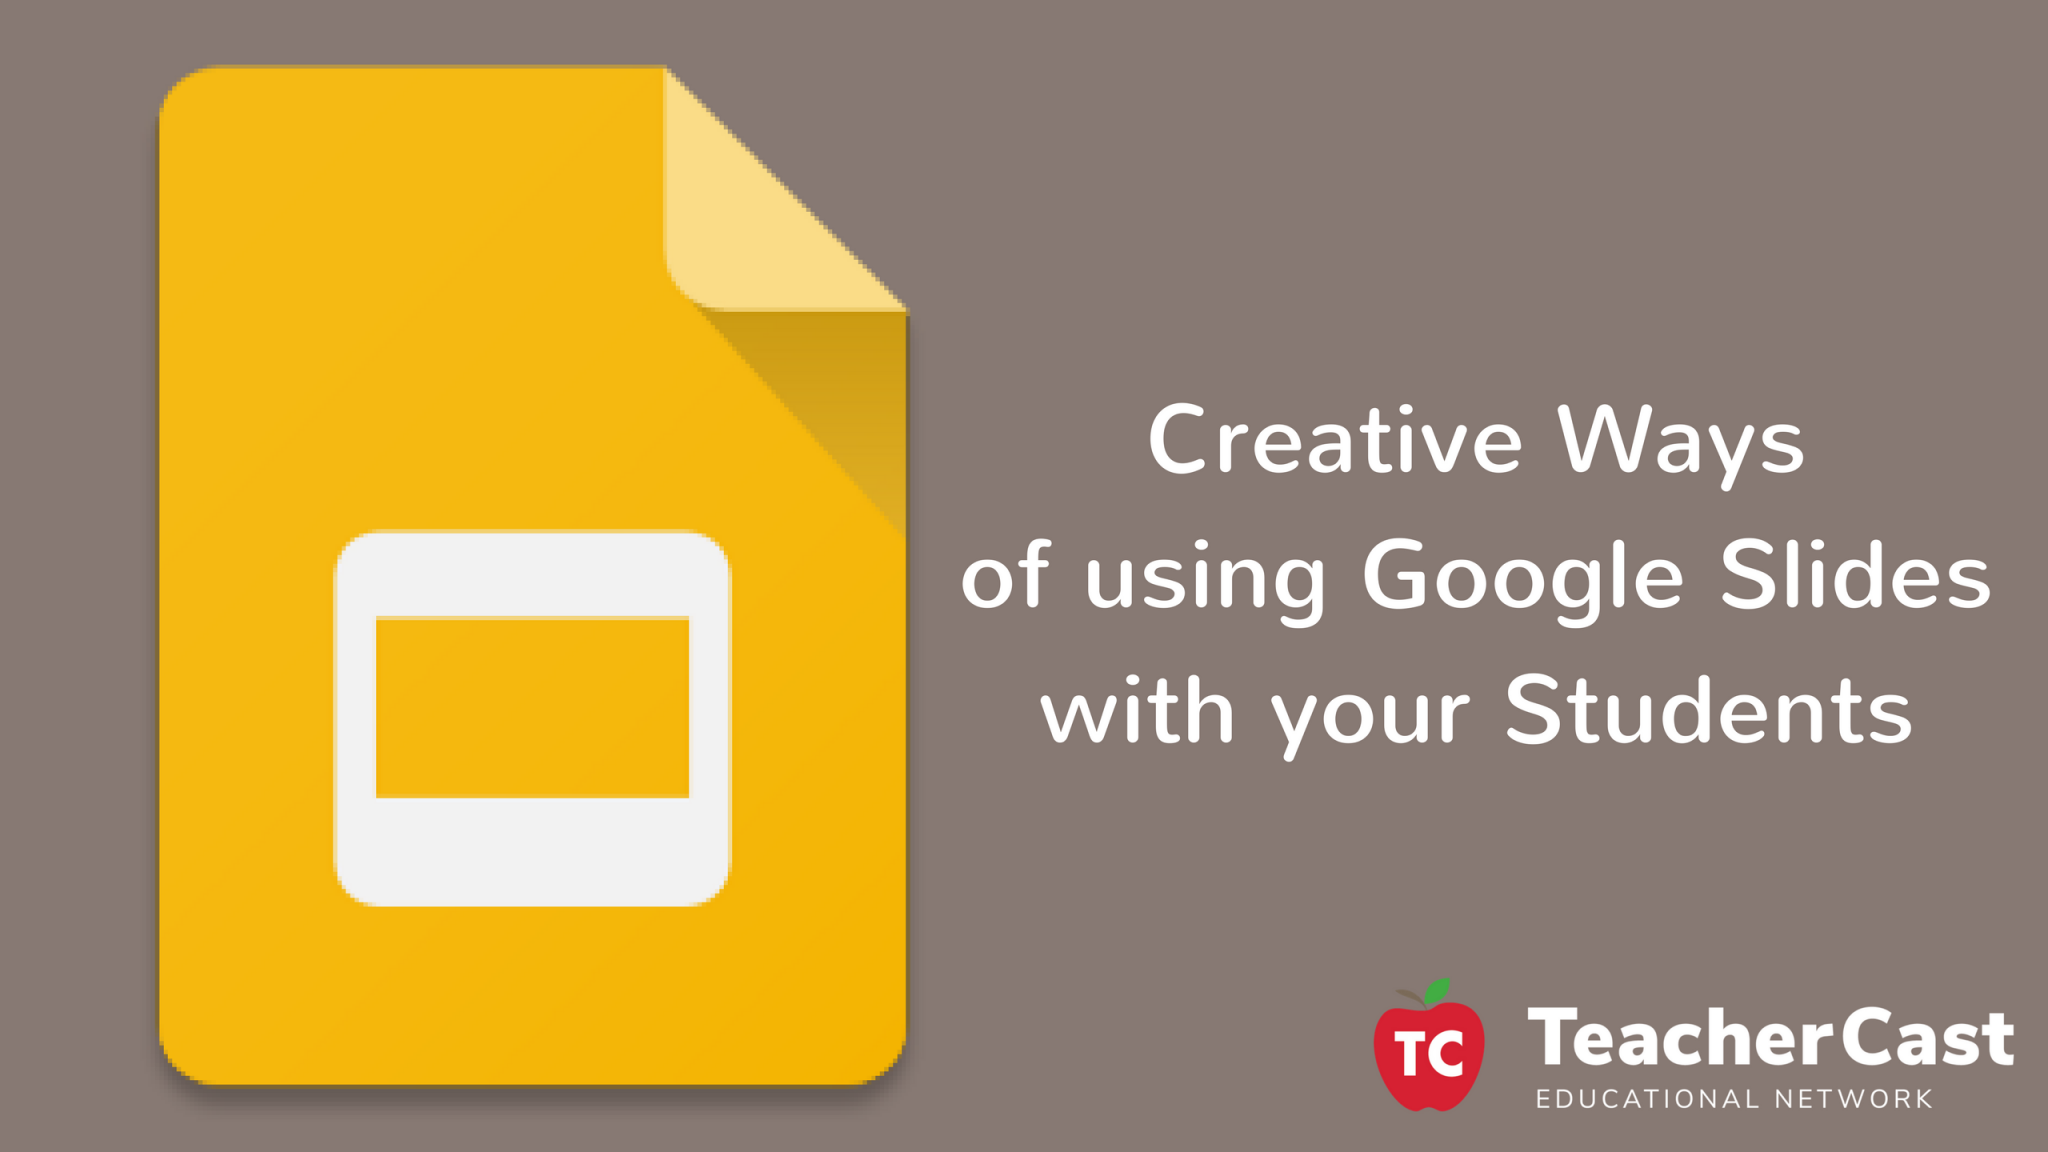 Workshop: Creative Ways of using Google Slides